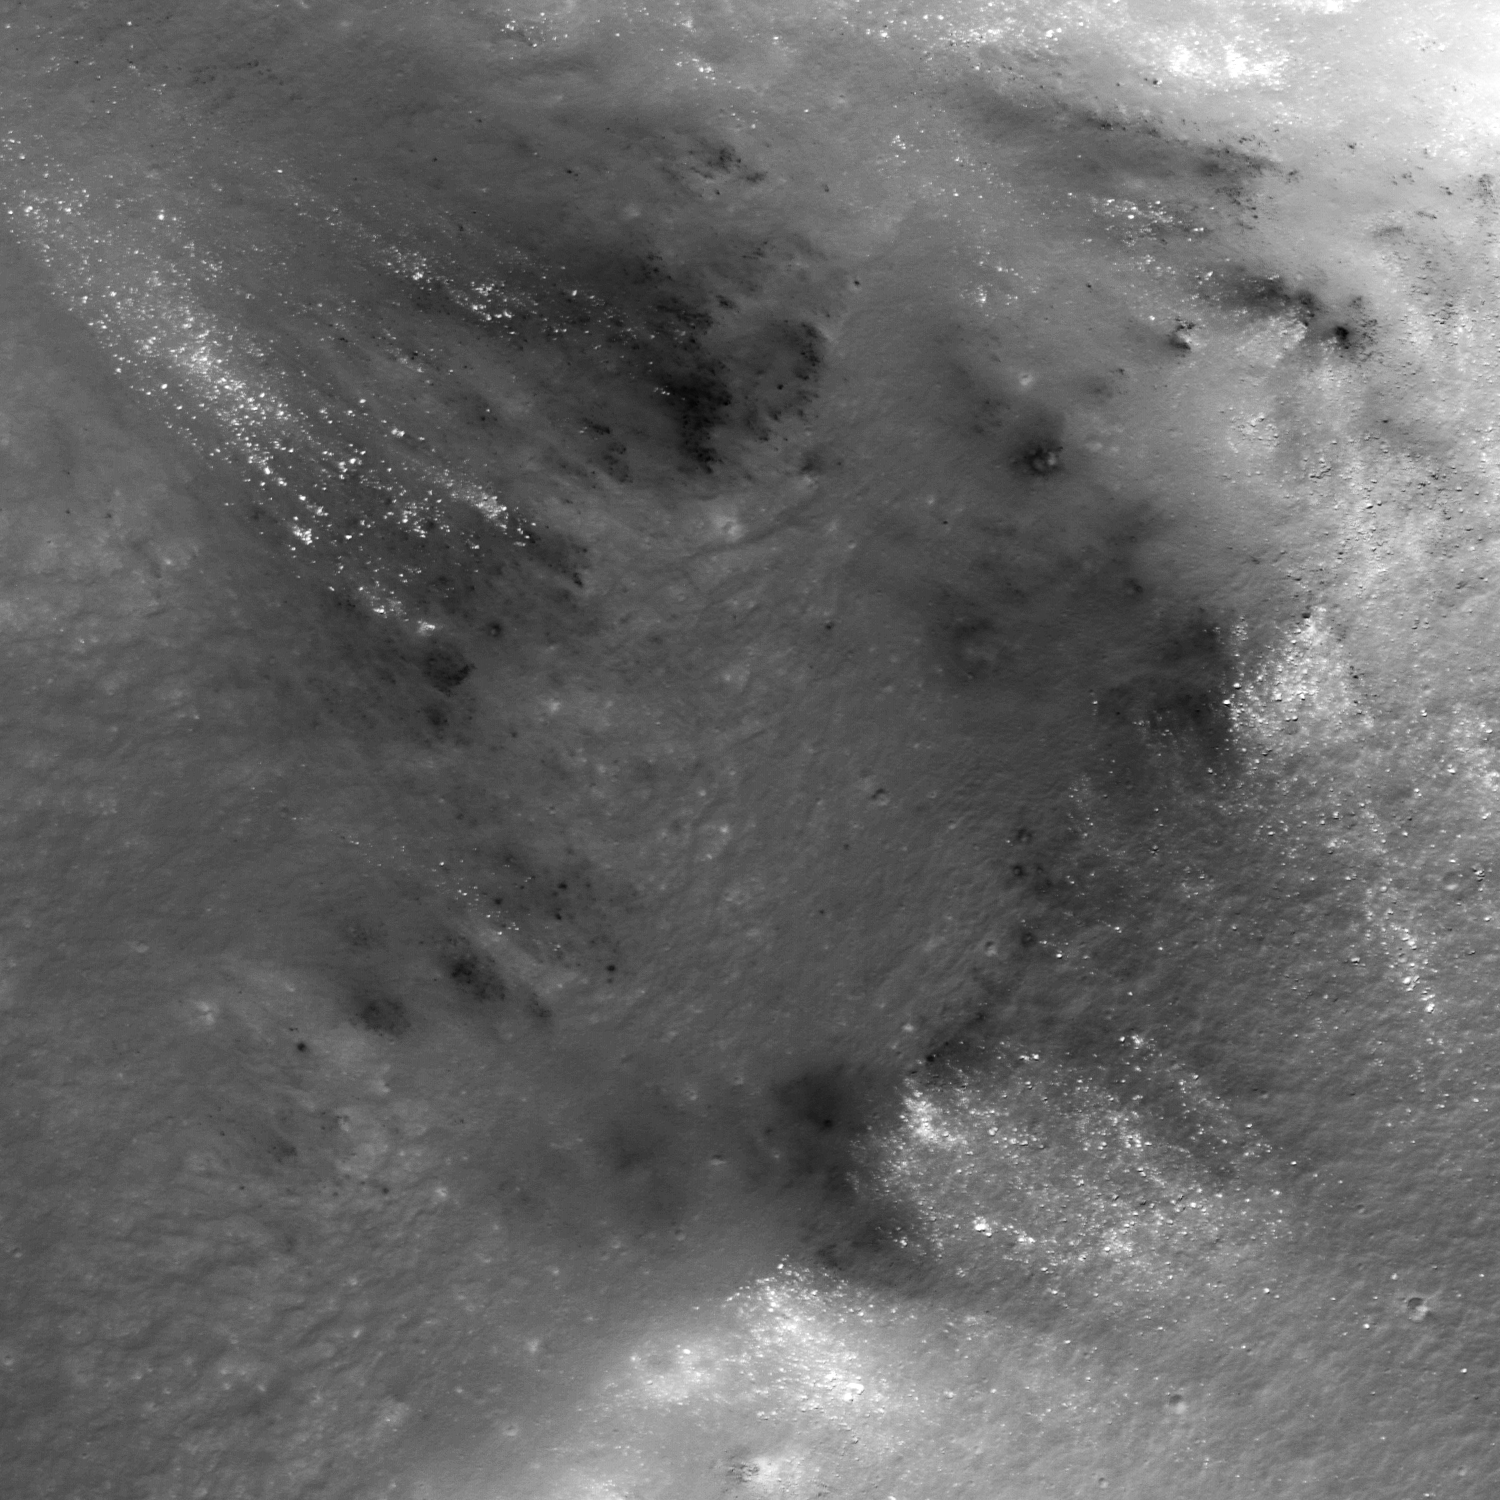 sports shoes 97aef 1e711 ...  vent-like  depressions Lassell G and Lassell K (14.918°S  351.065°E) in  Mare Nubium. LROC Narrow Angle Camera (NAC) observation M1116585481R, LRO  ...